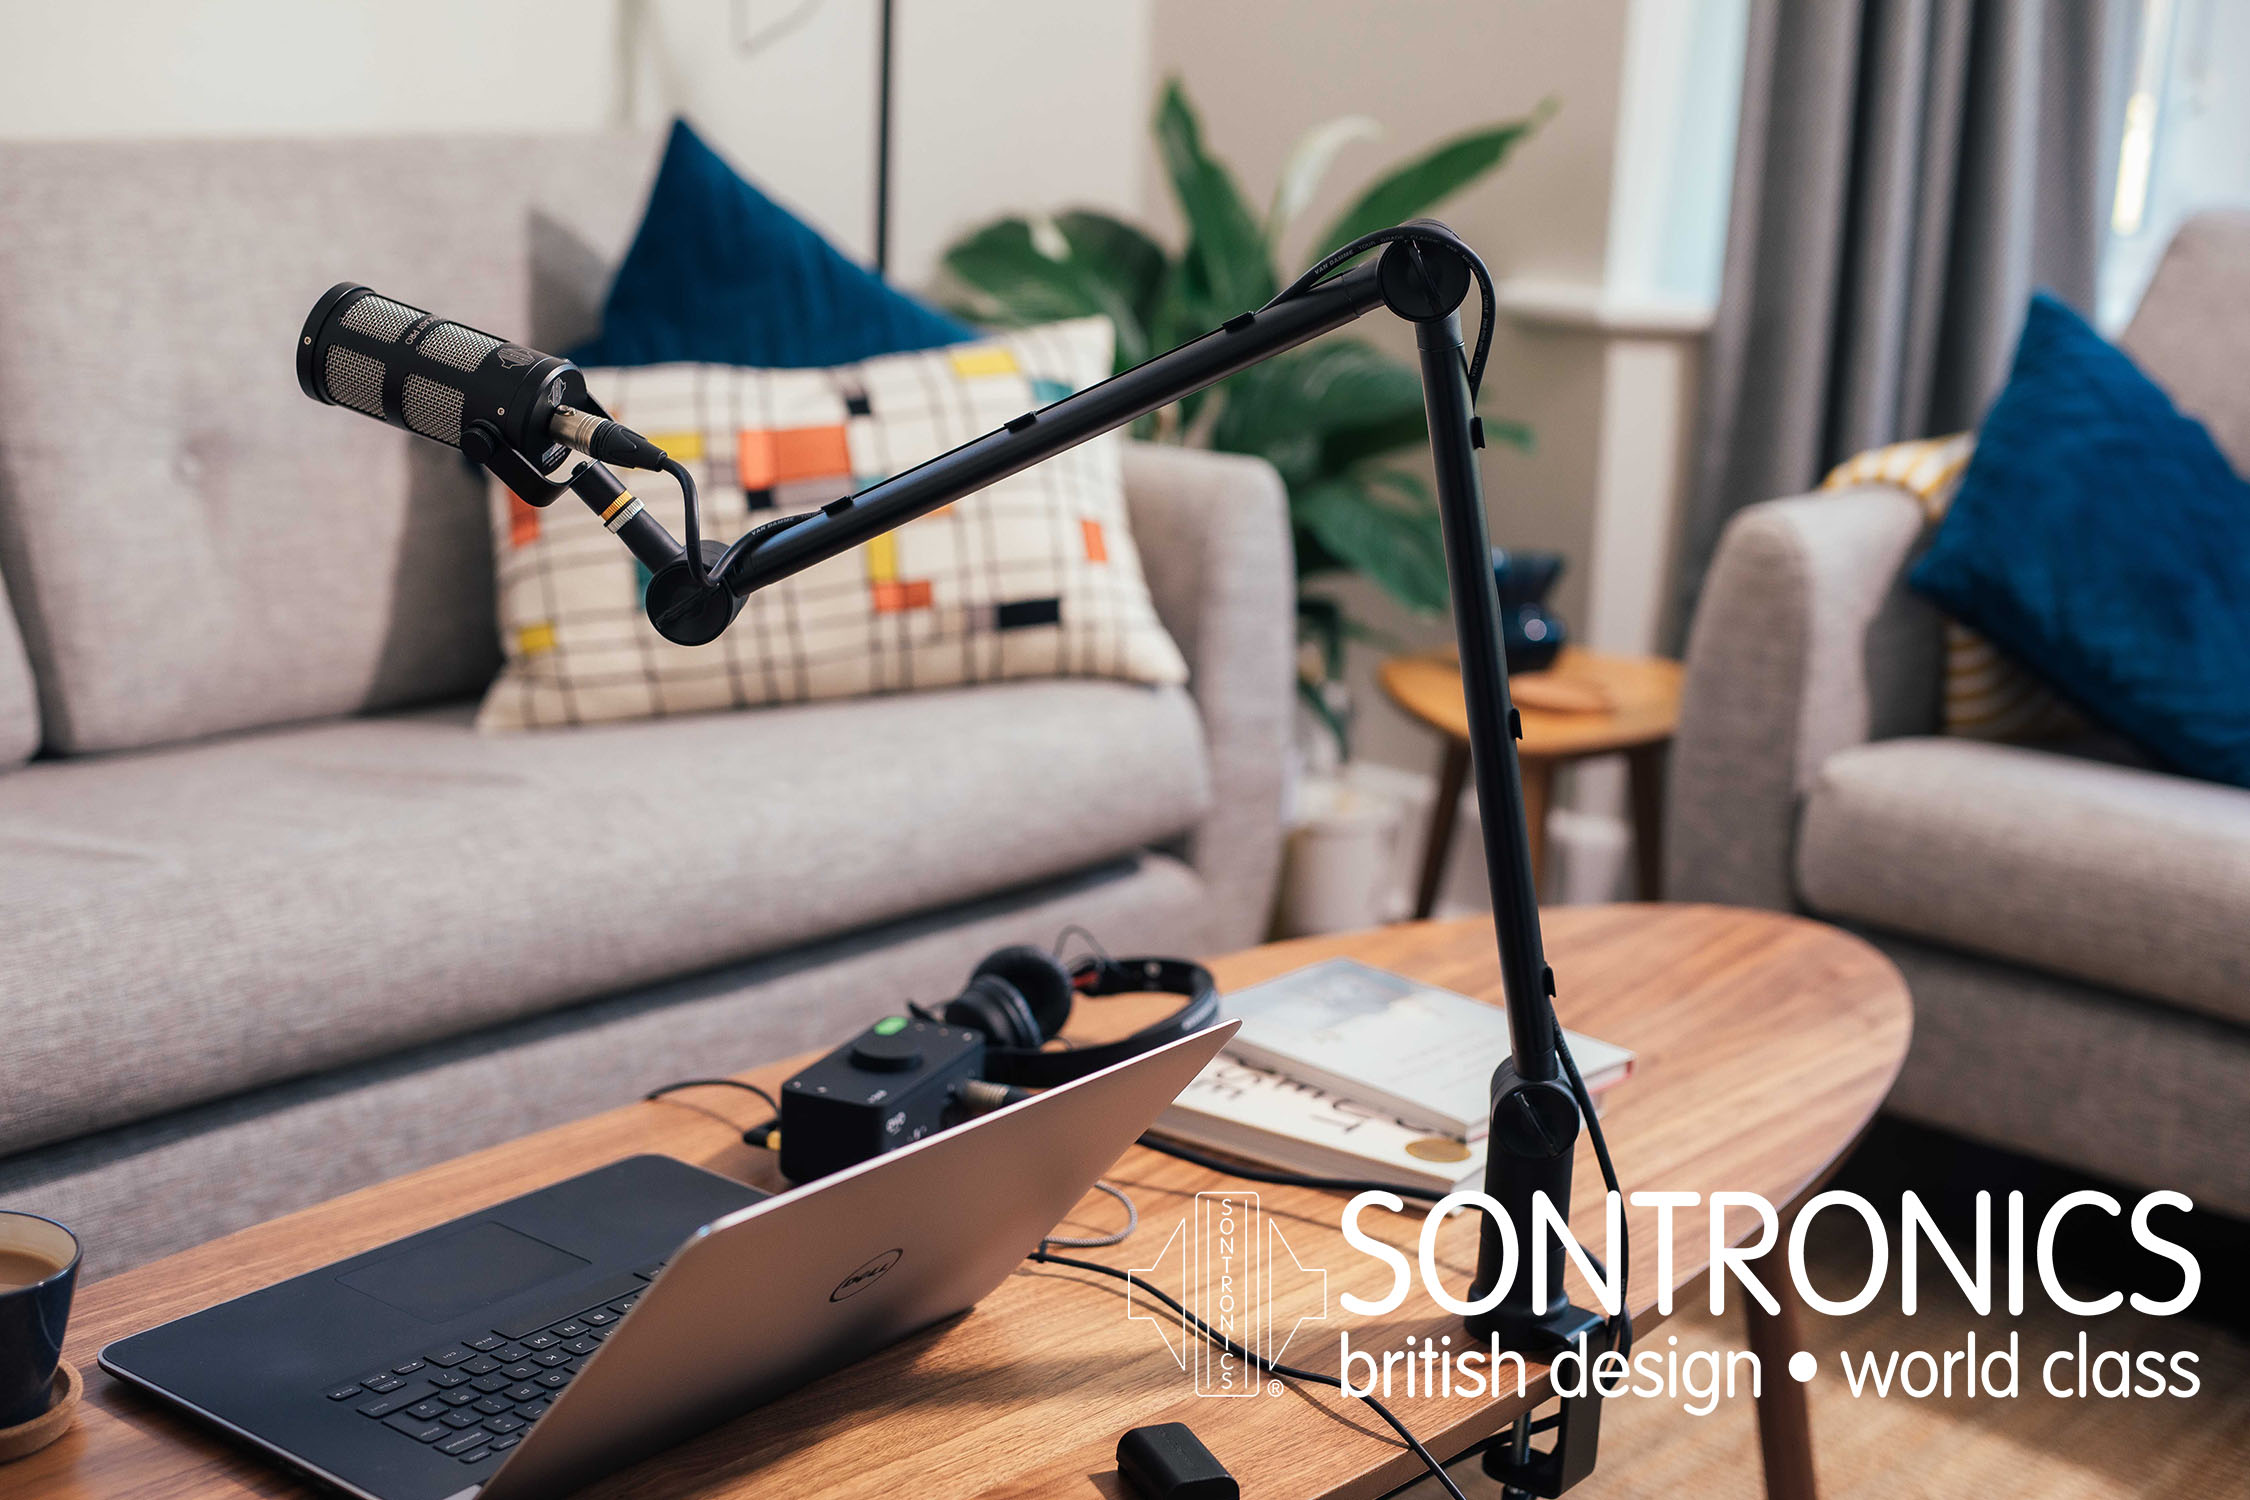 Nyheter från Sontronics – Elevate Broadcast Stand & XLR-USB Cable.